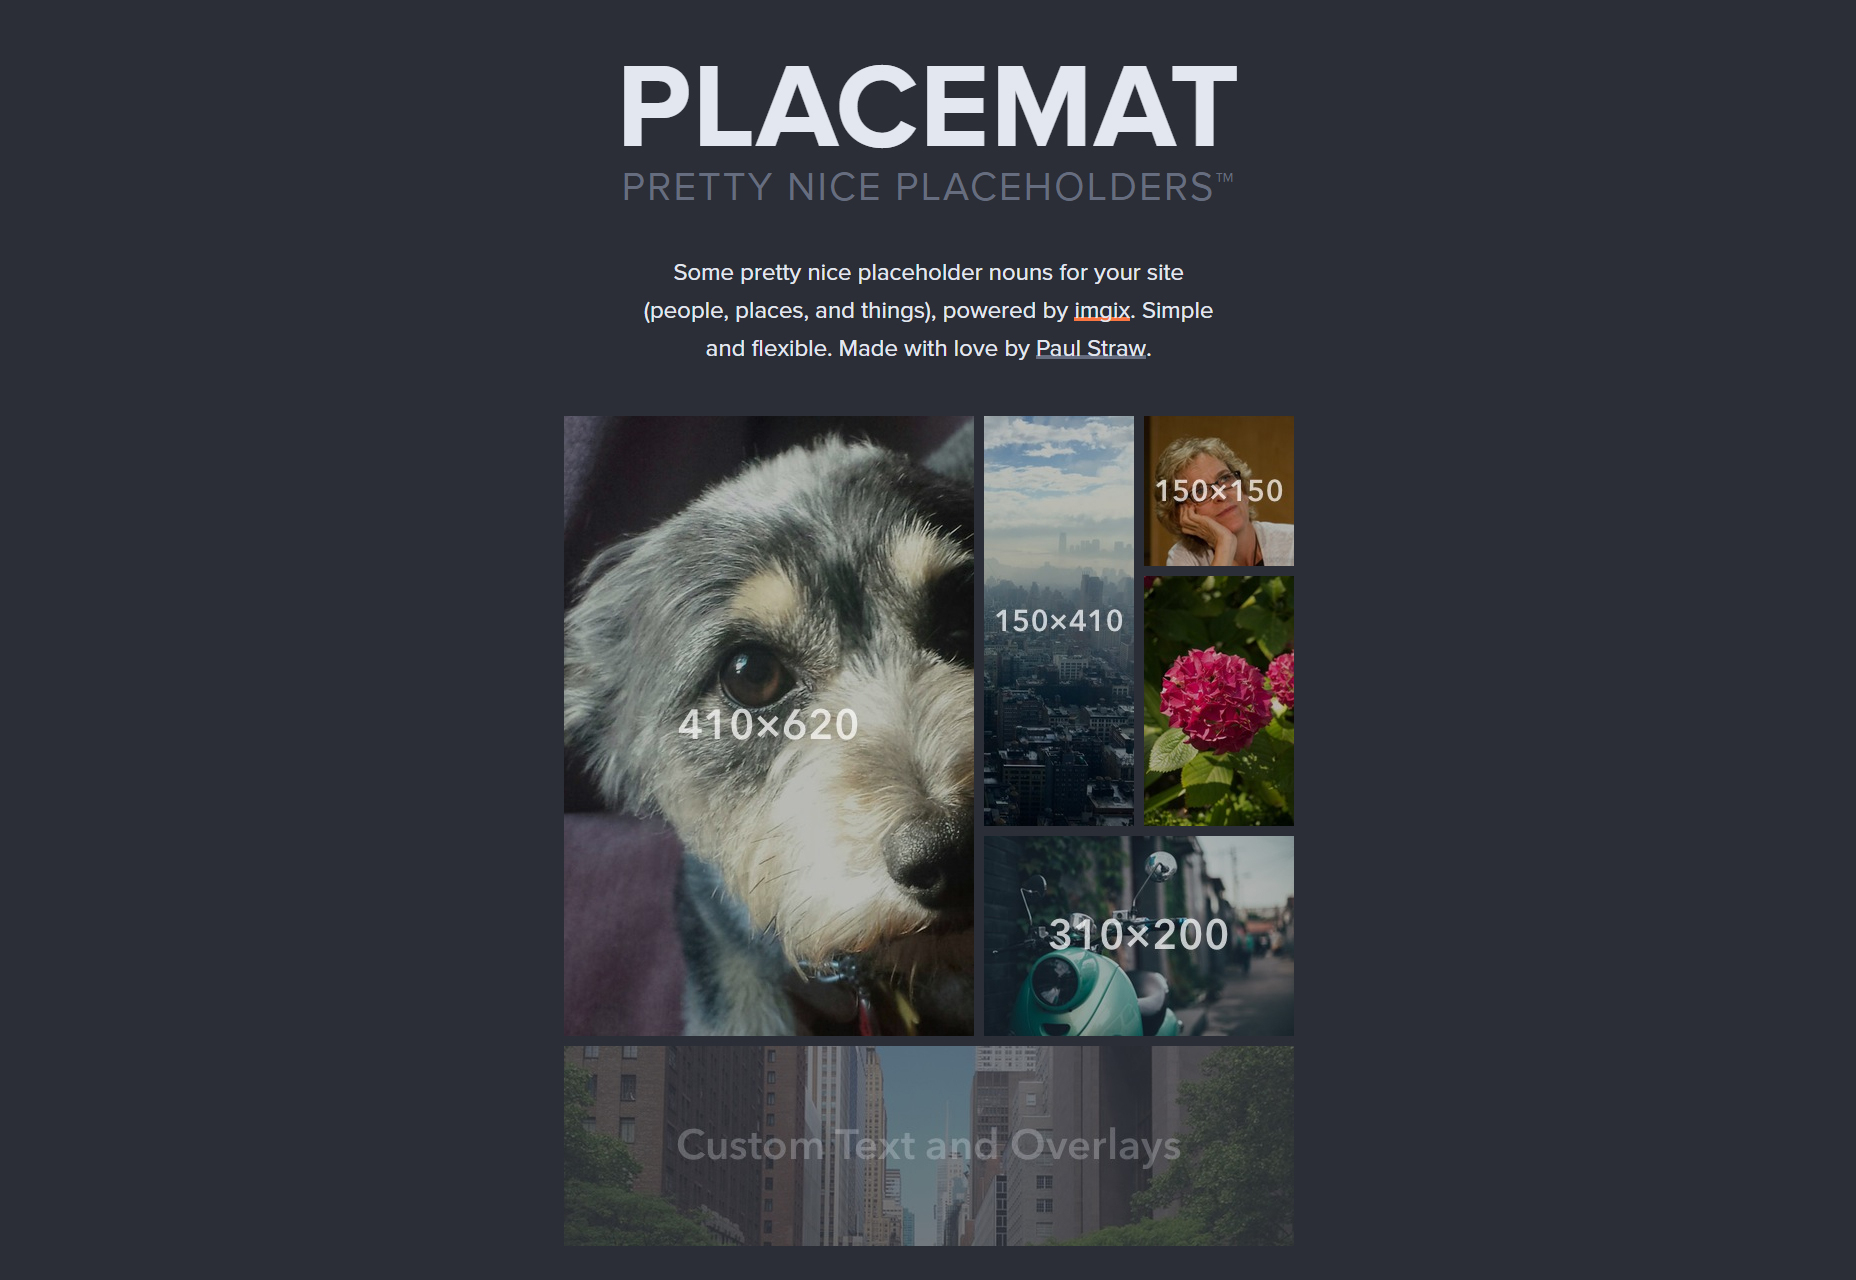 placemat-pretty-url-image-placeholders